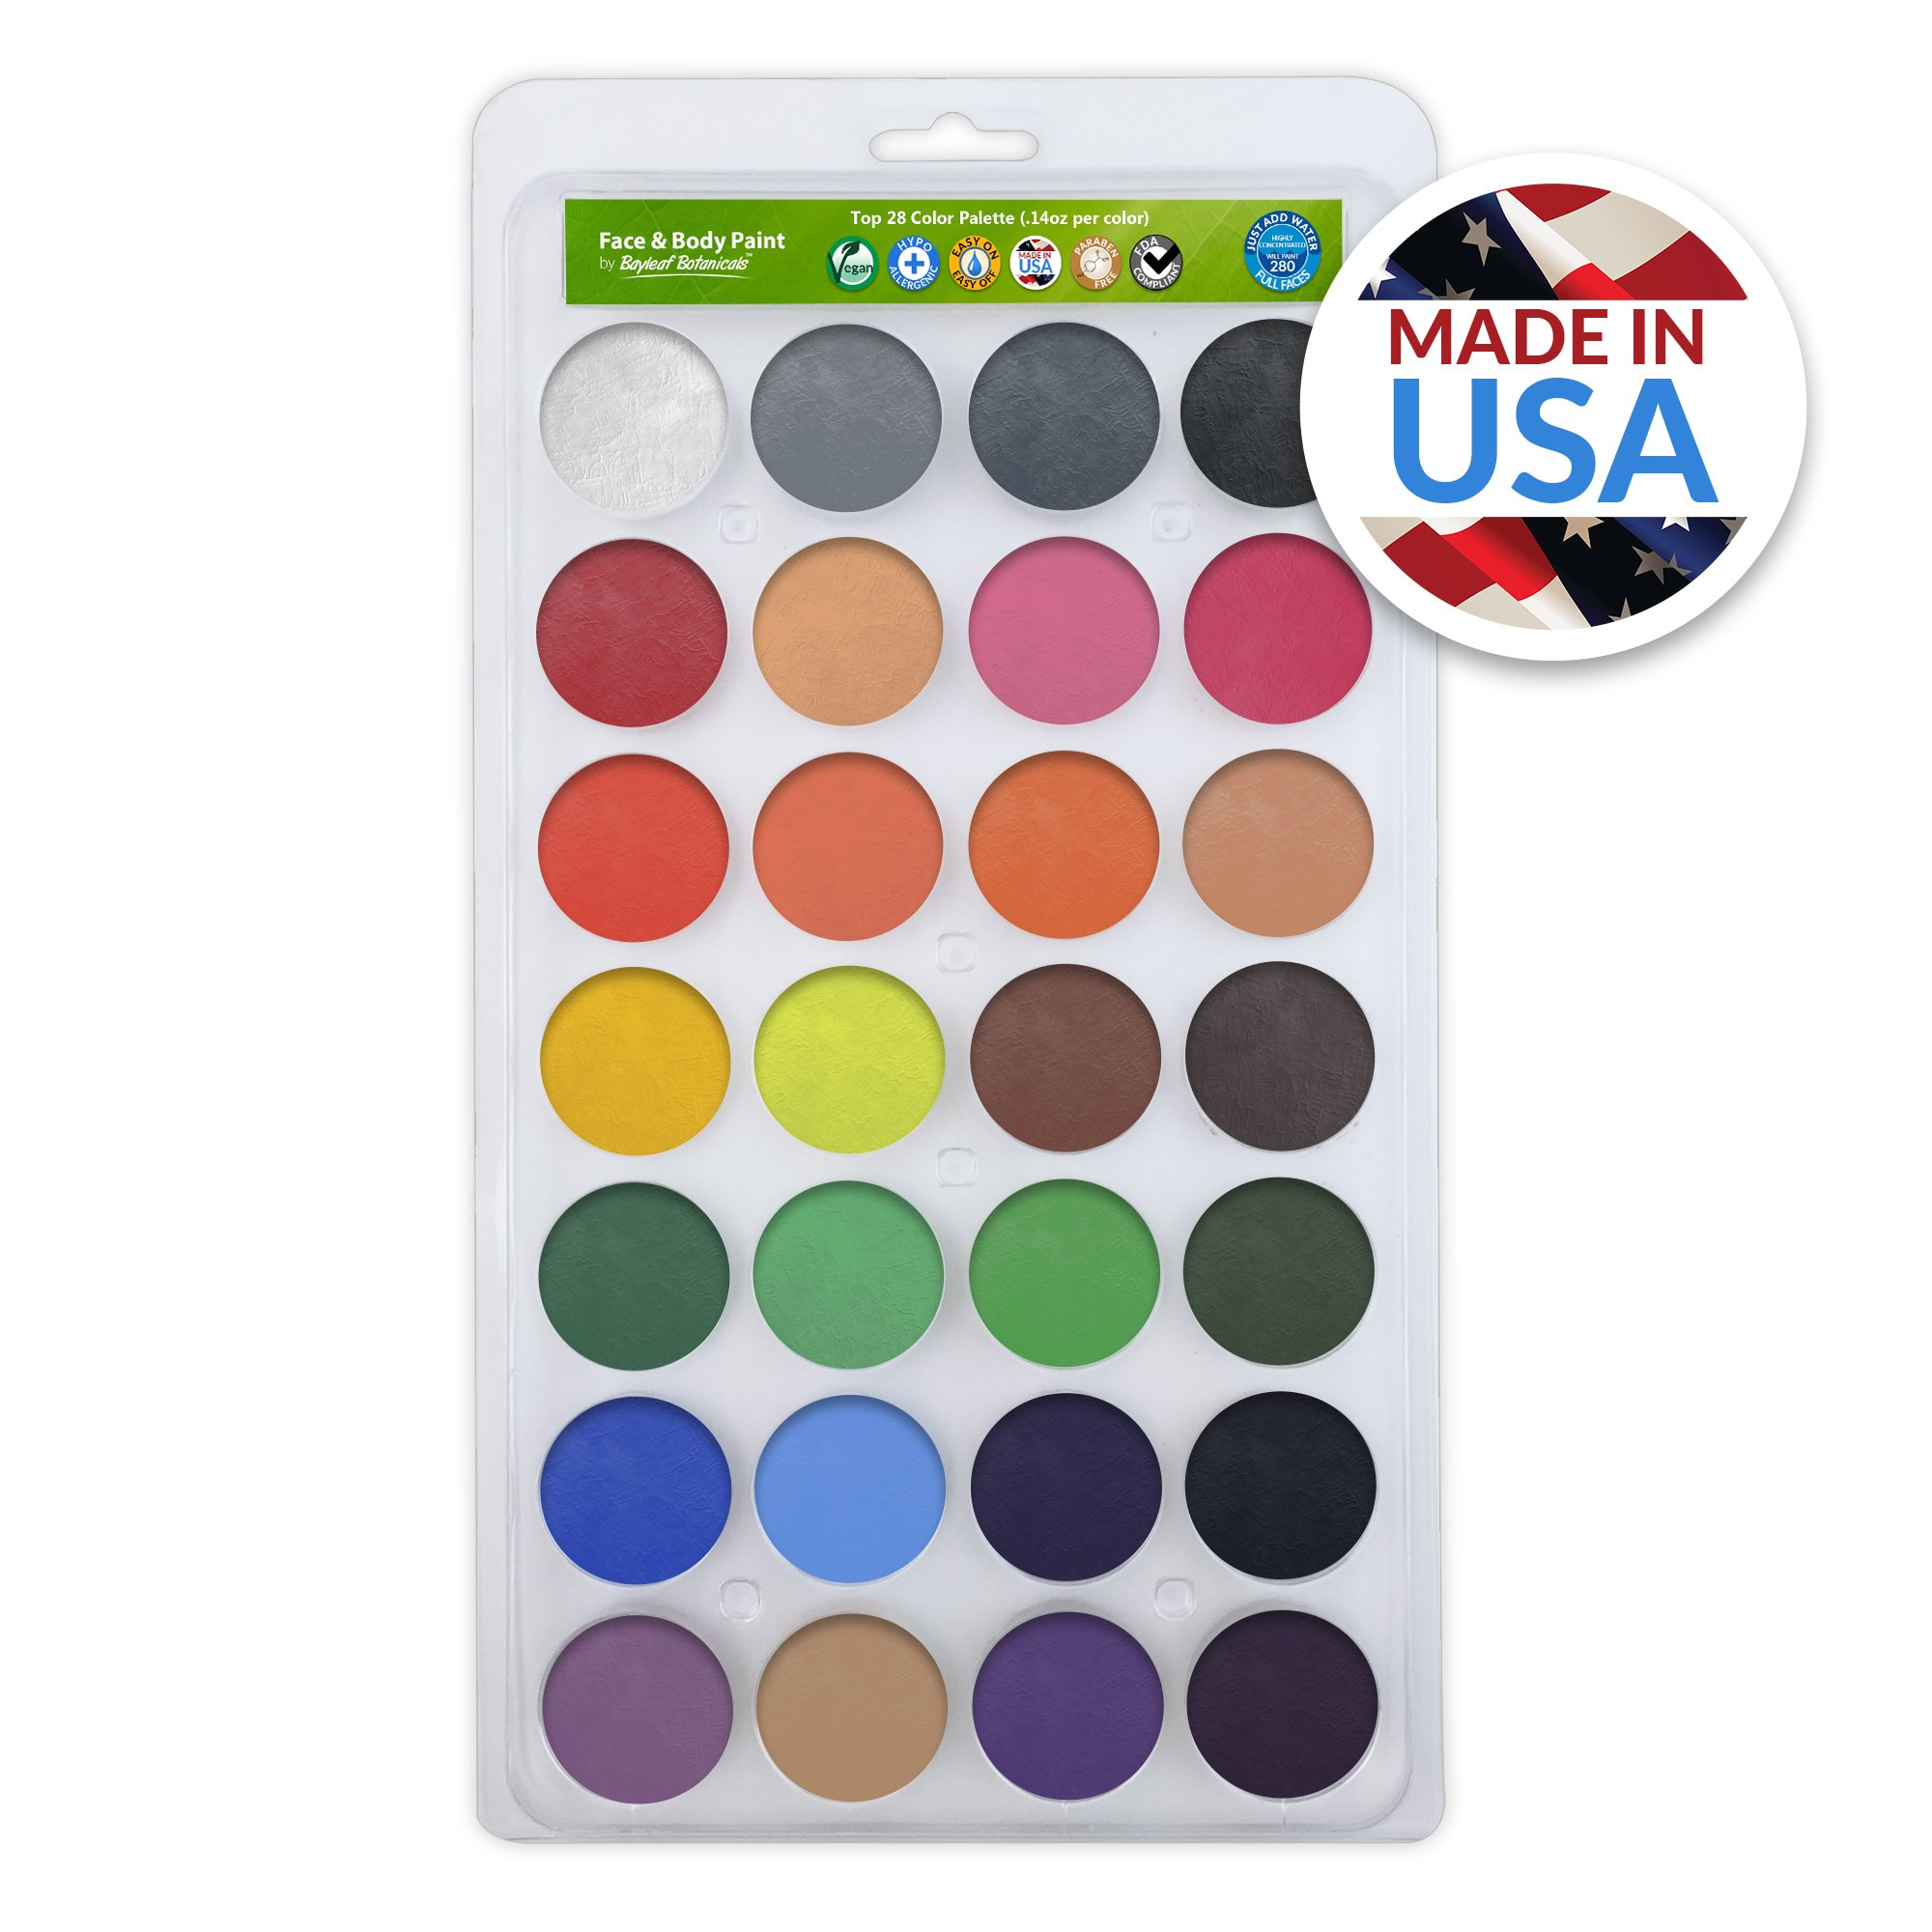 Vegan Face Paint Kit - TOP 28 Color Palette - Face Paints 280 FULL FACES (Volume Painting) - Made in the USA - Hypo-allergenic, Paraben Free! by Bayleaf Botanicals